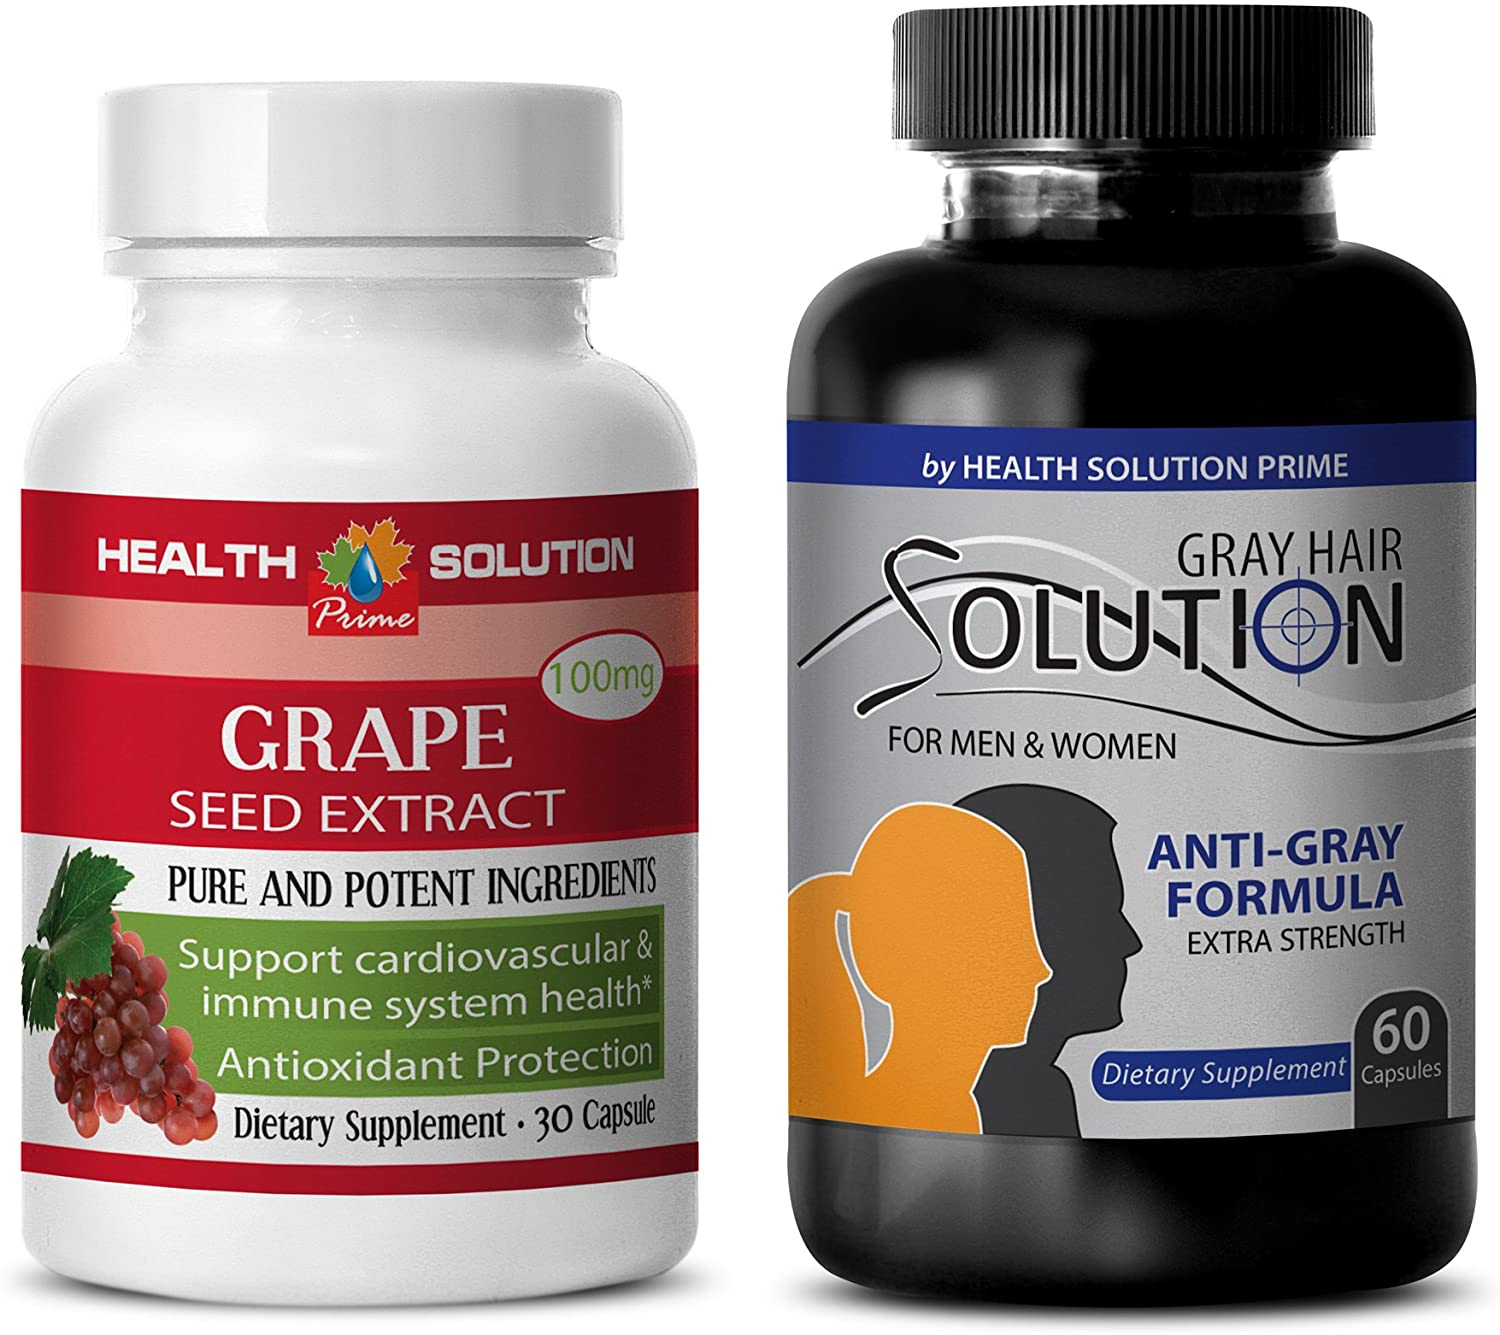 Anti-Aging Hair - Grape Seed Extract – Grey Hair Solution - zinc - 2 Bottles Combo (30 Capsules + 60 Capsules)